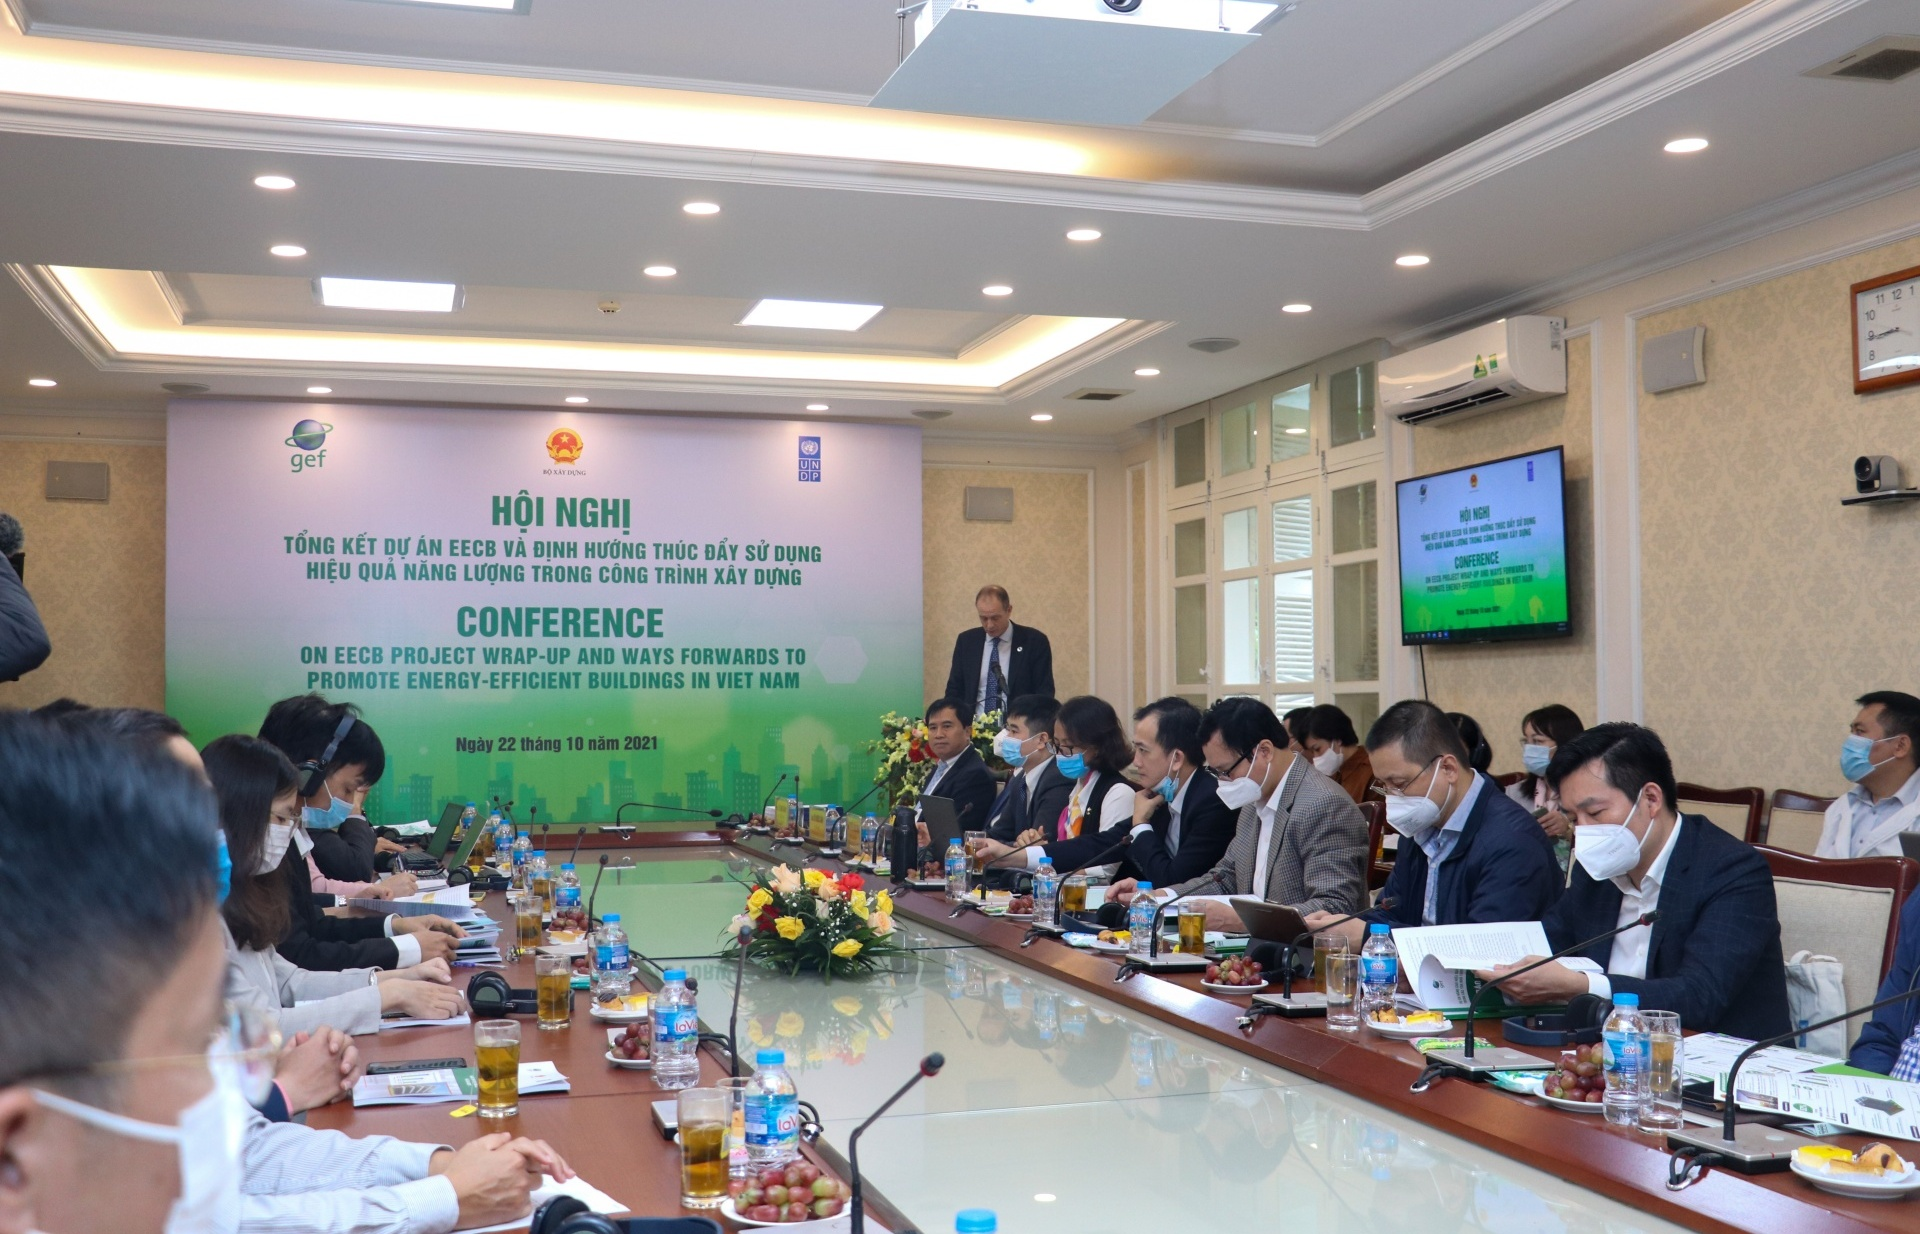 Promotion of energy efficiency in residential and commercial buildings